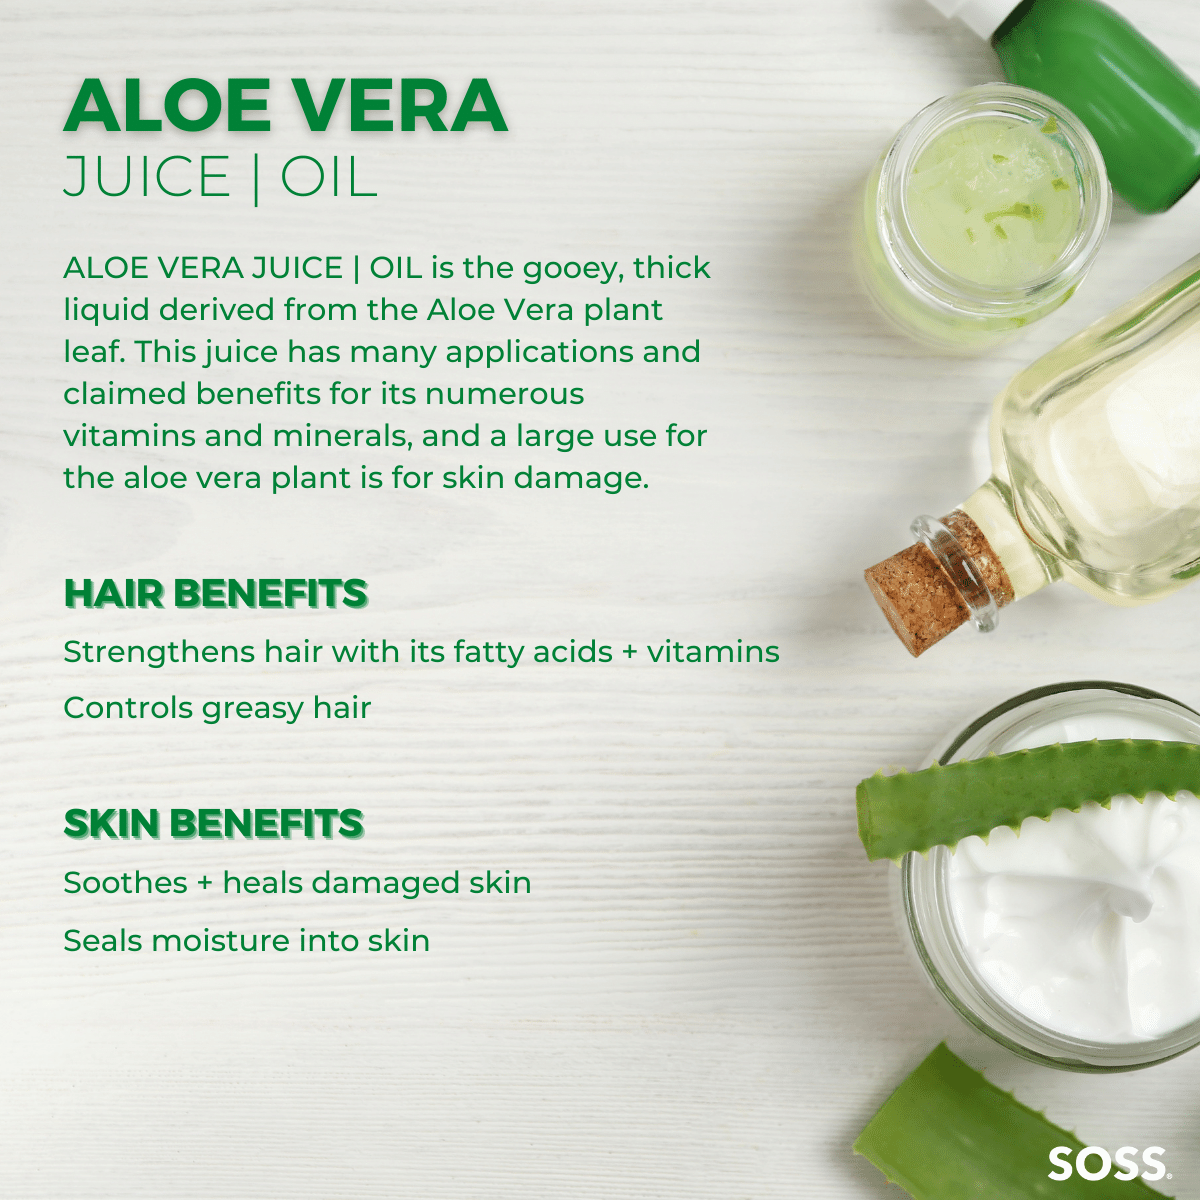 Aloe Vera Juice is a historic remedy used to soothe skin irritations and absorb moisture into hair follicles.